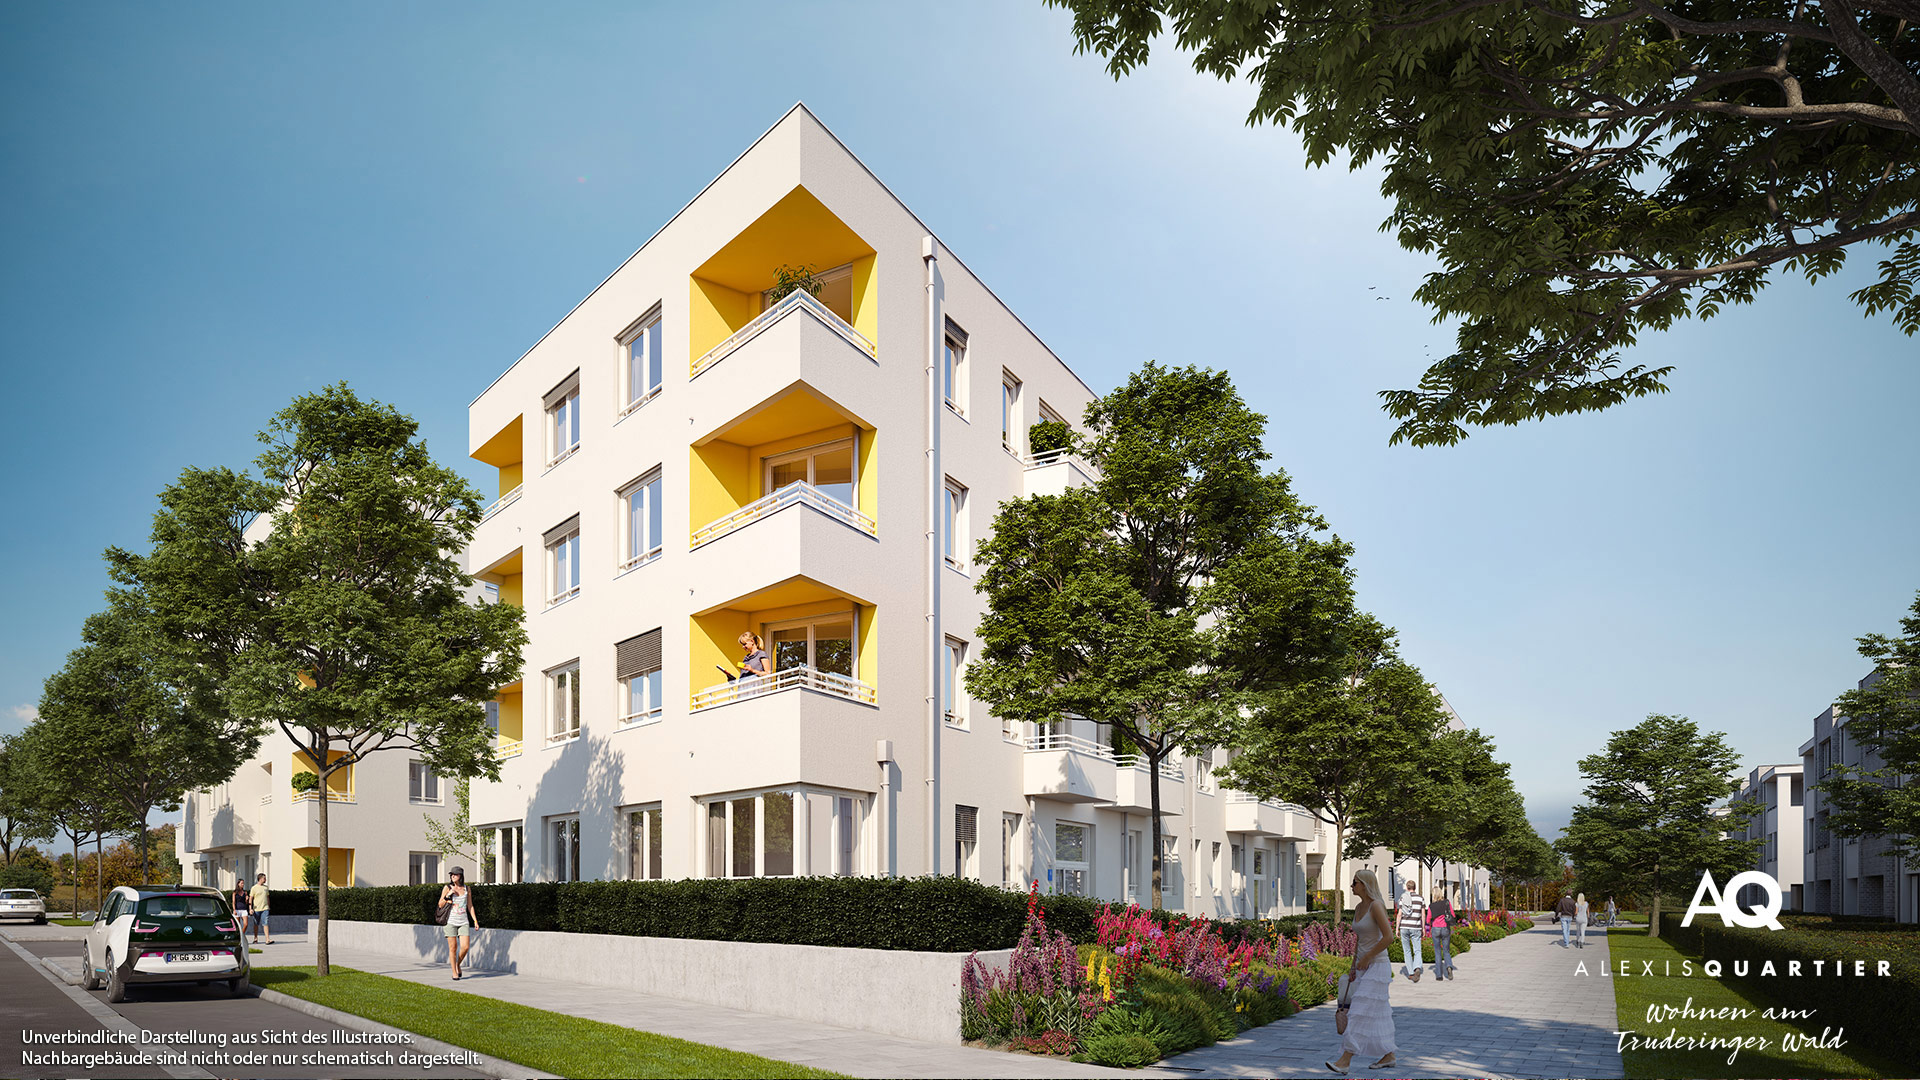 Property Alexisquartier - Wohnen am Truderinger Wald - commercial units - Illustration 2